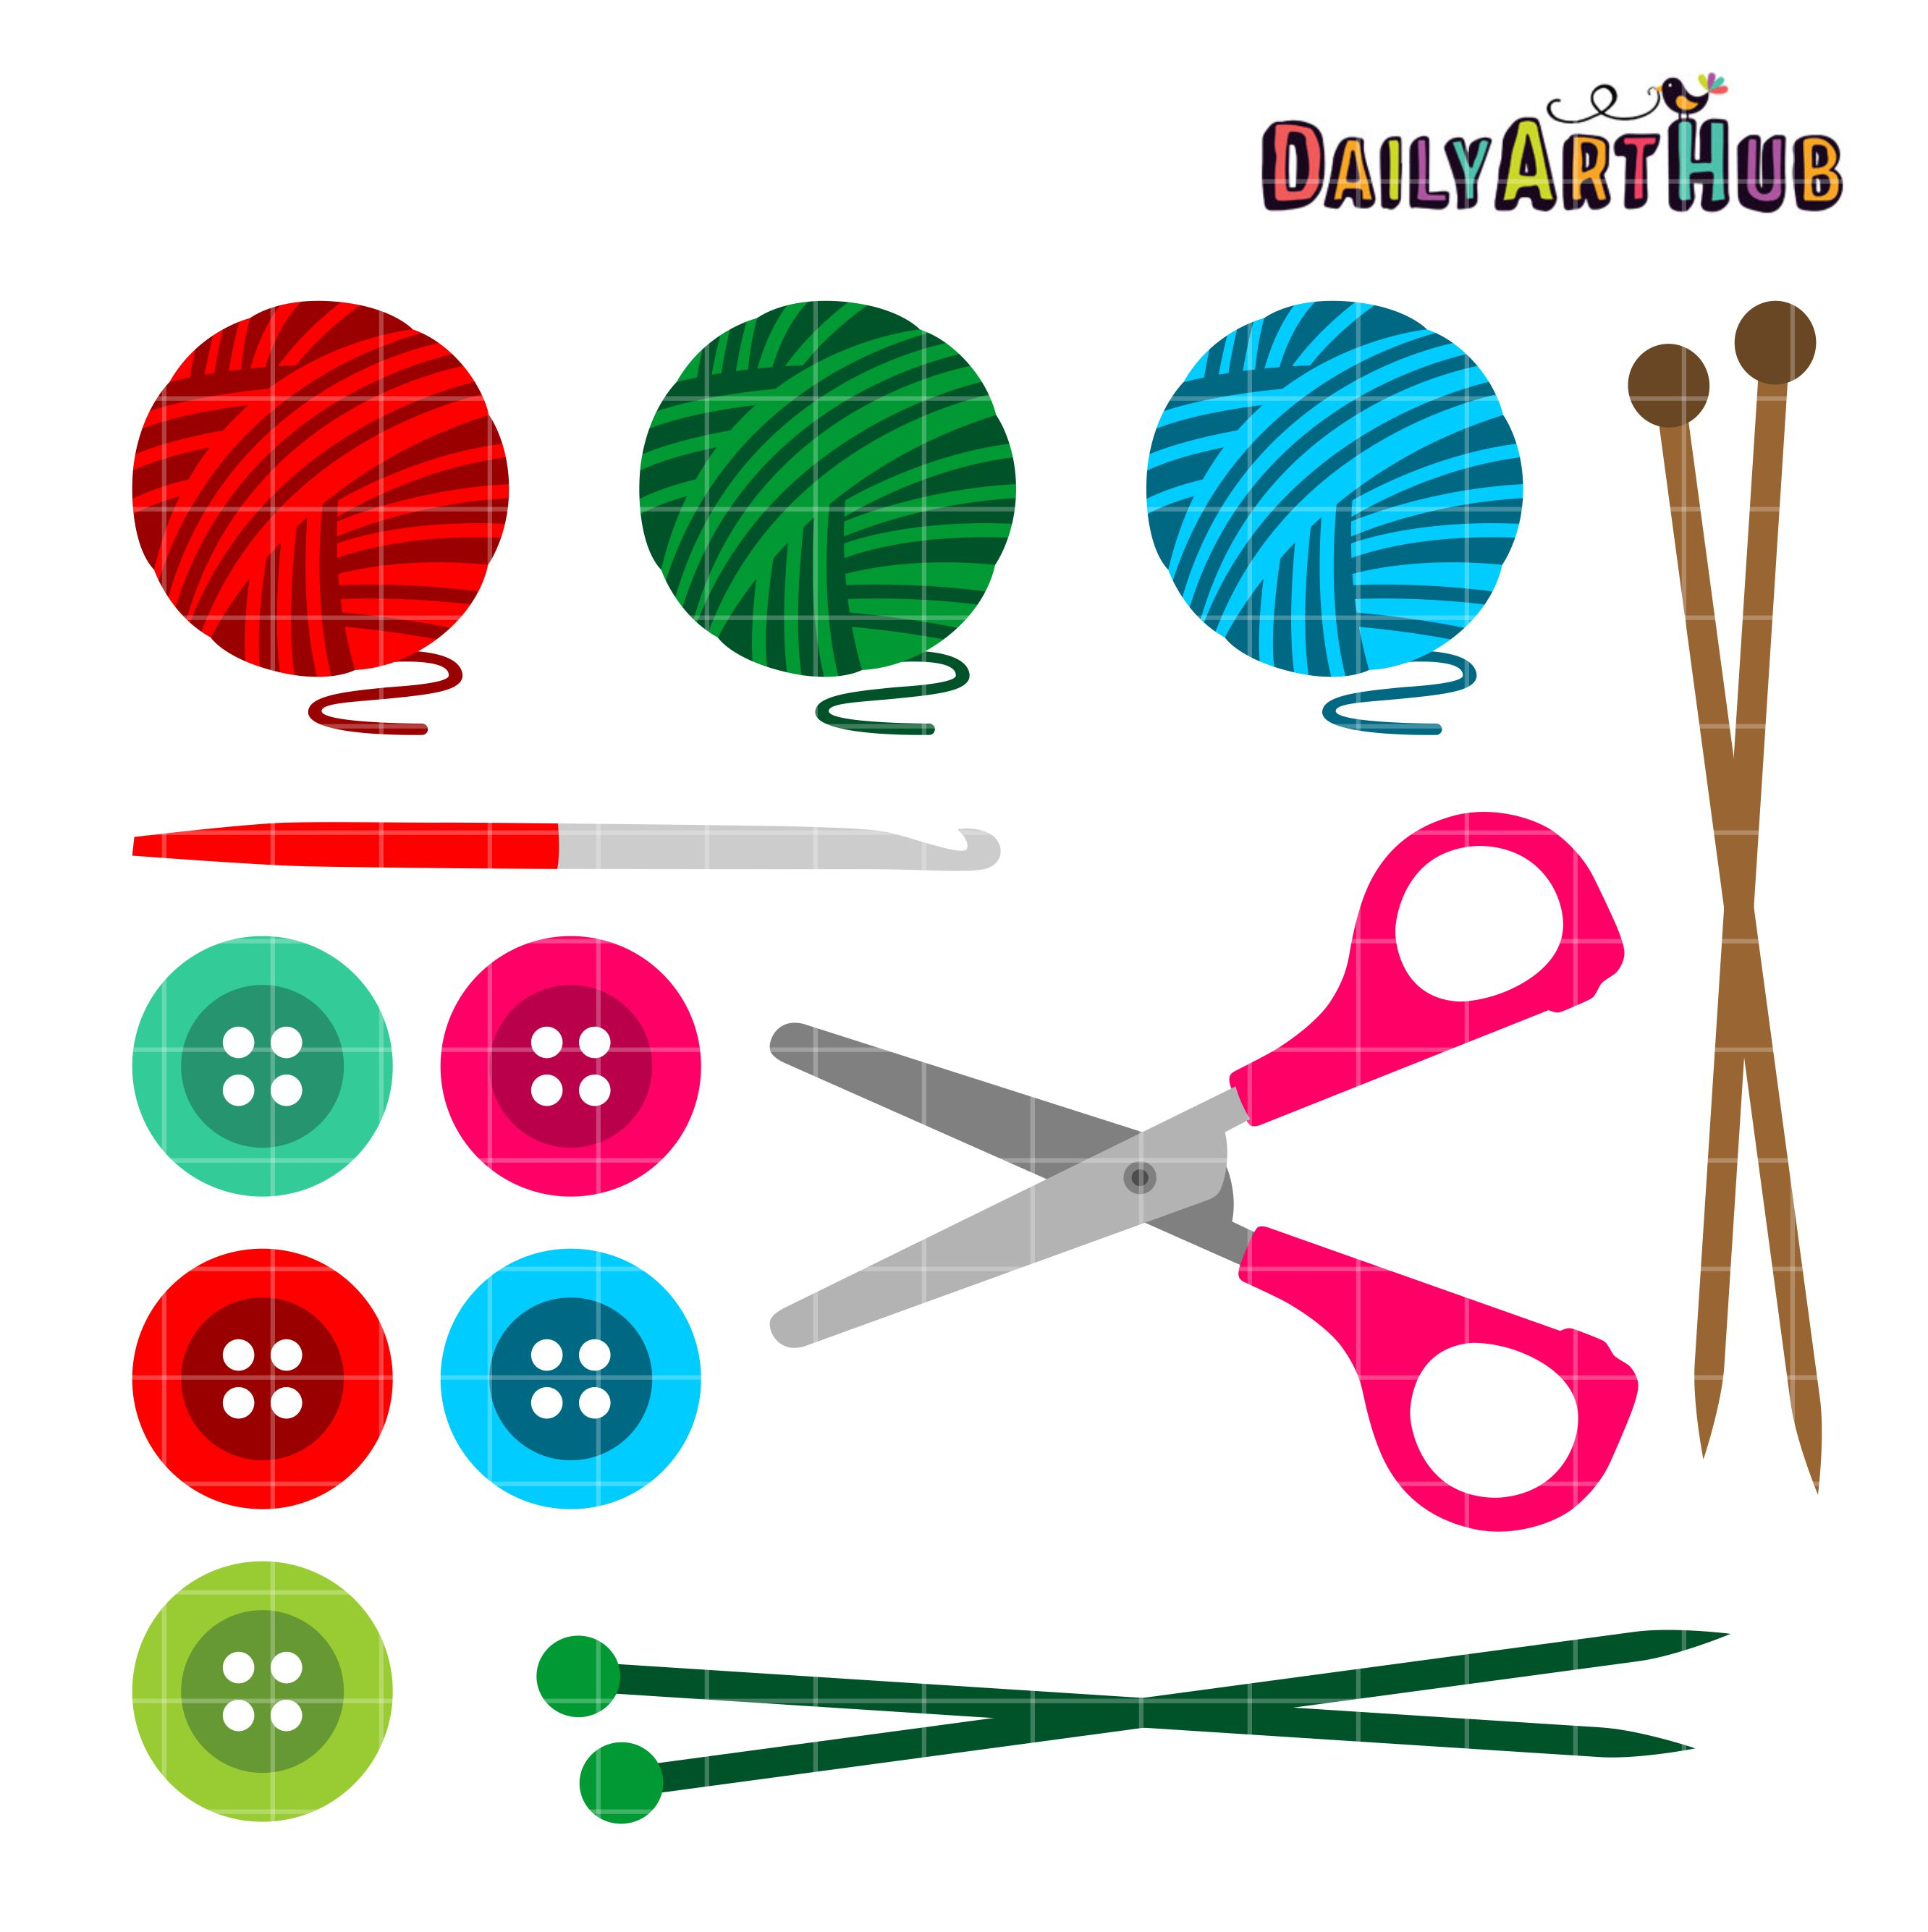 Knitting Crochet Clipart knitting and crochet clip art set daily art ...